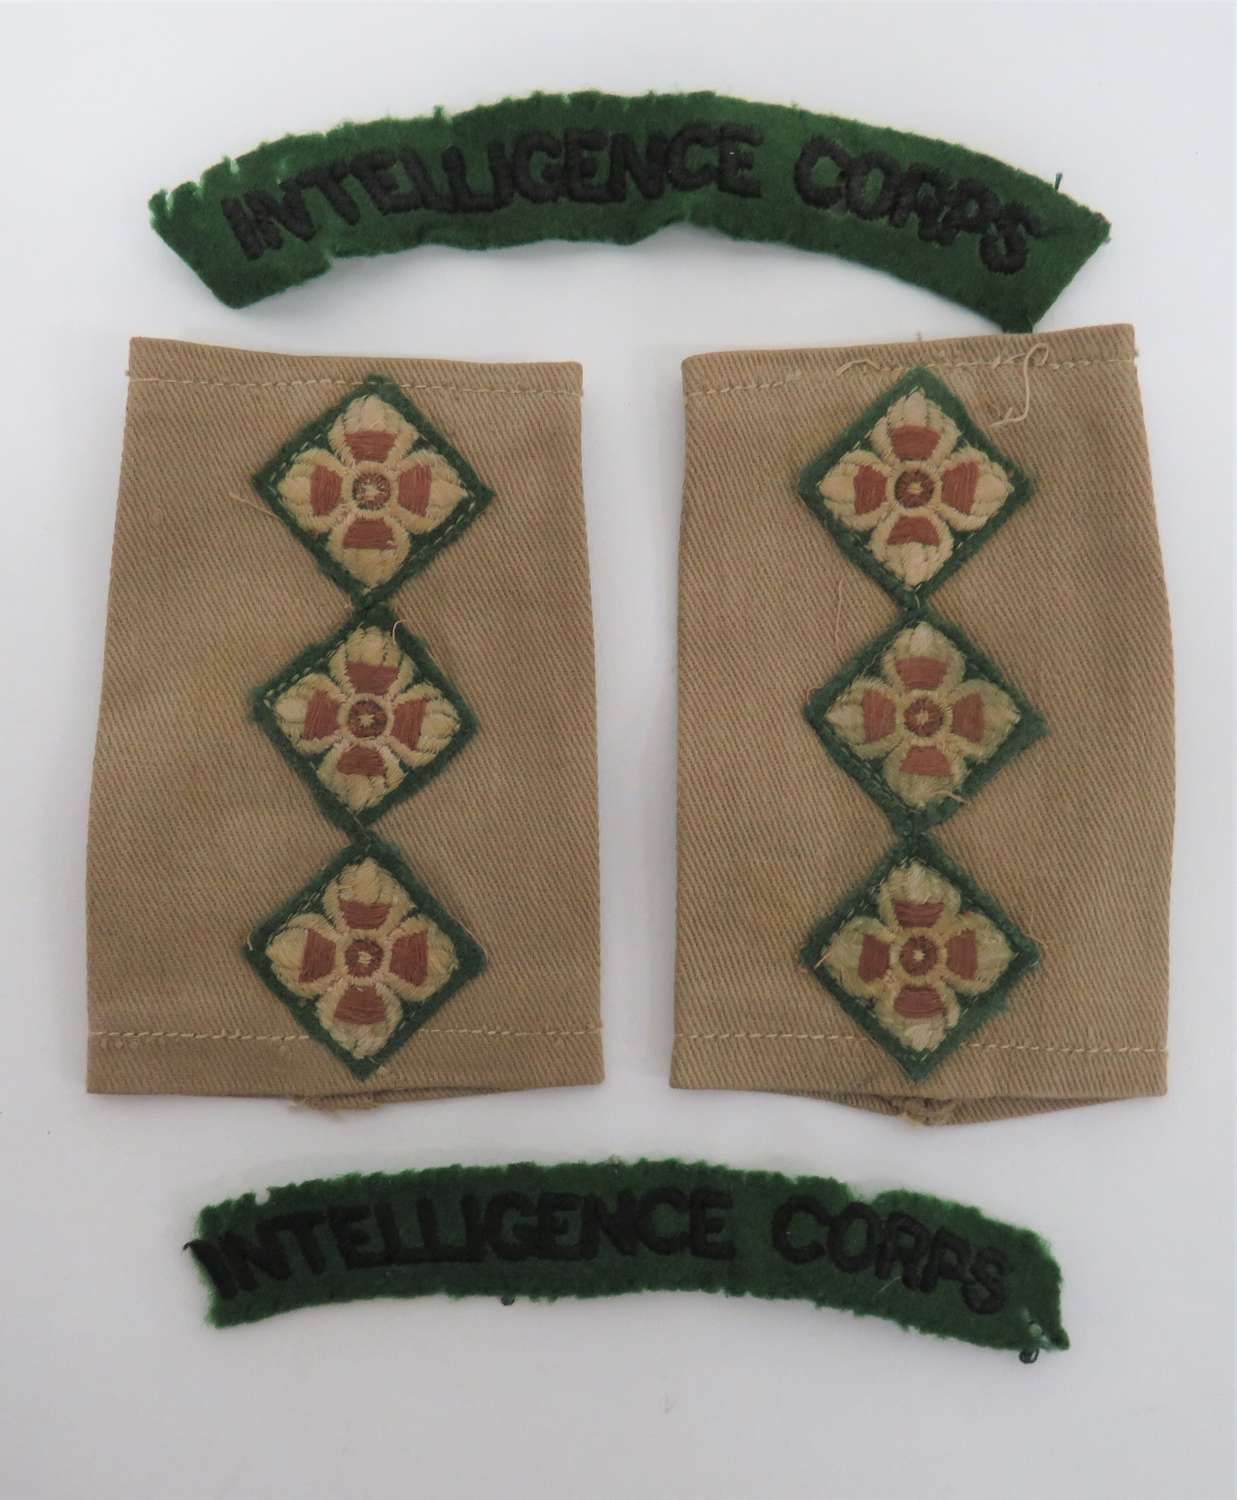 WW2 Intelligence Corps Slip on Rank Tabs and Shoulder Titles